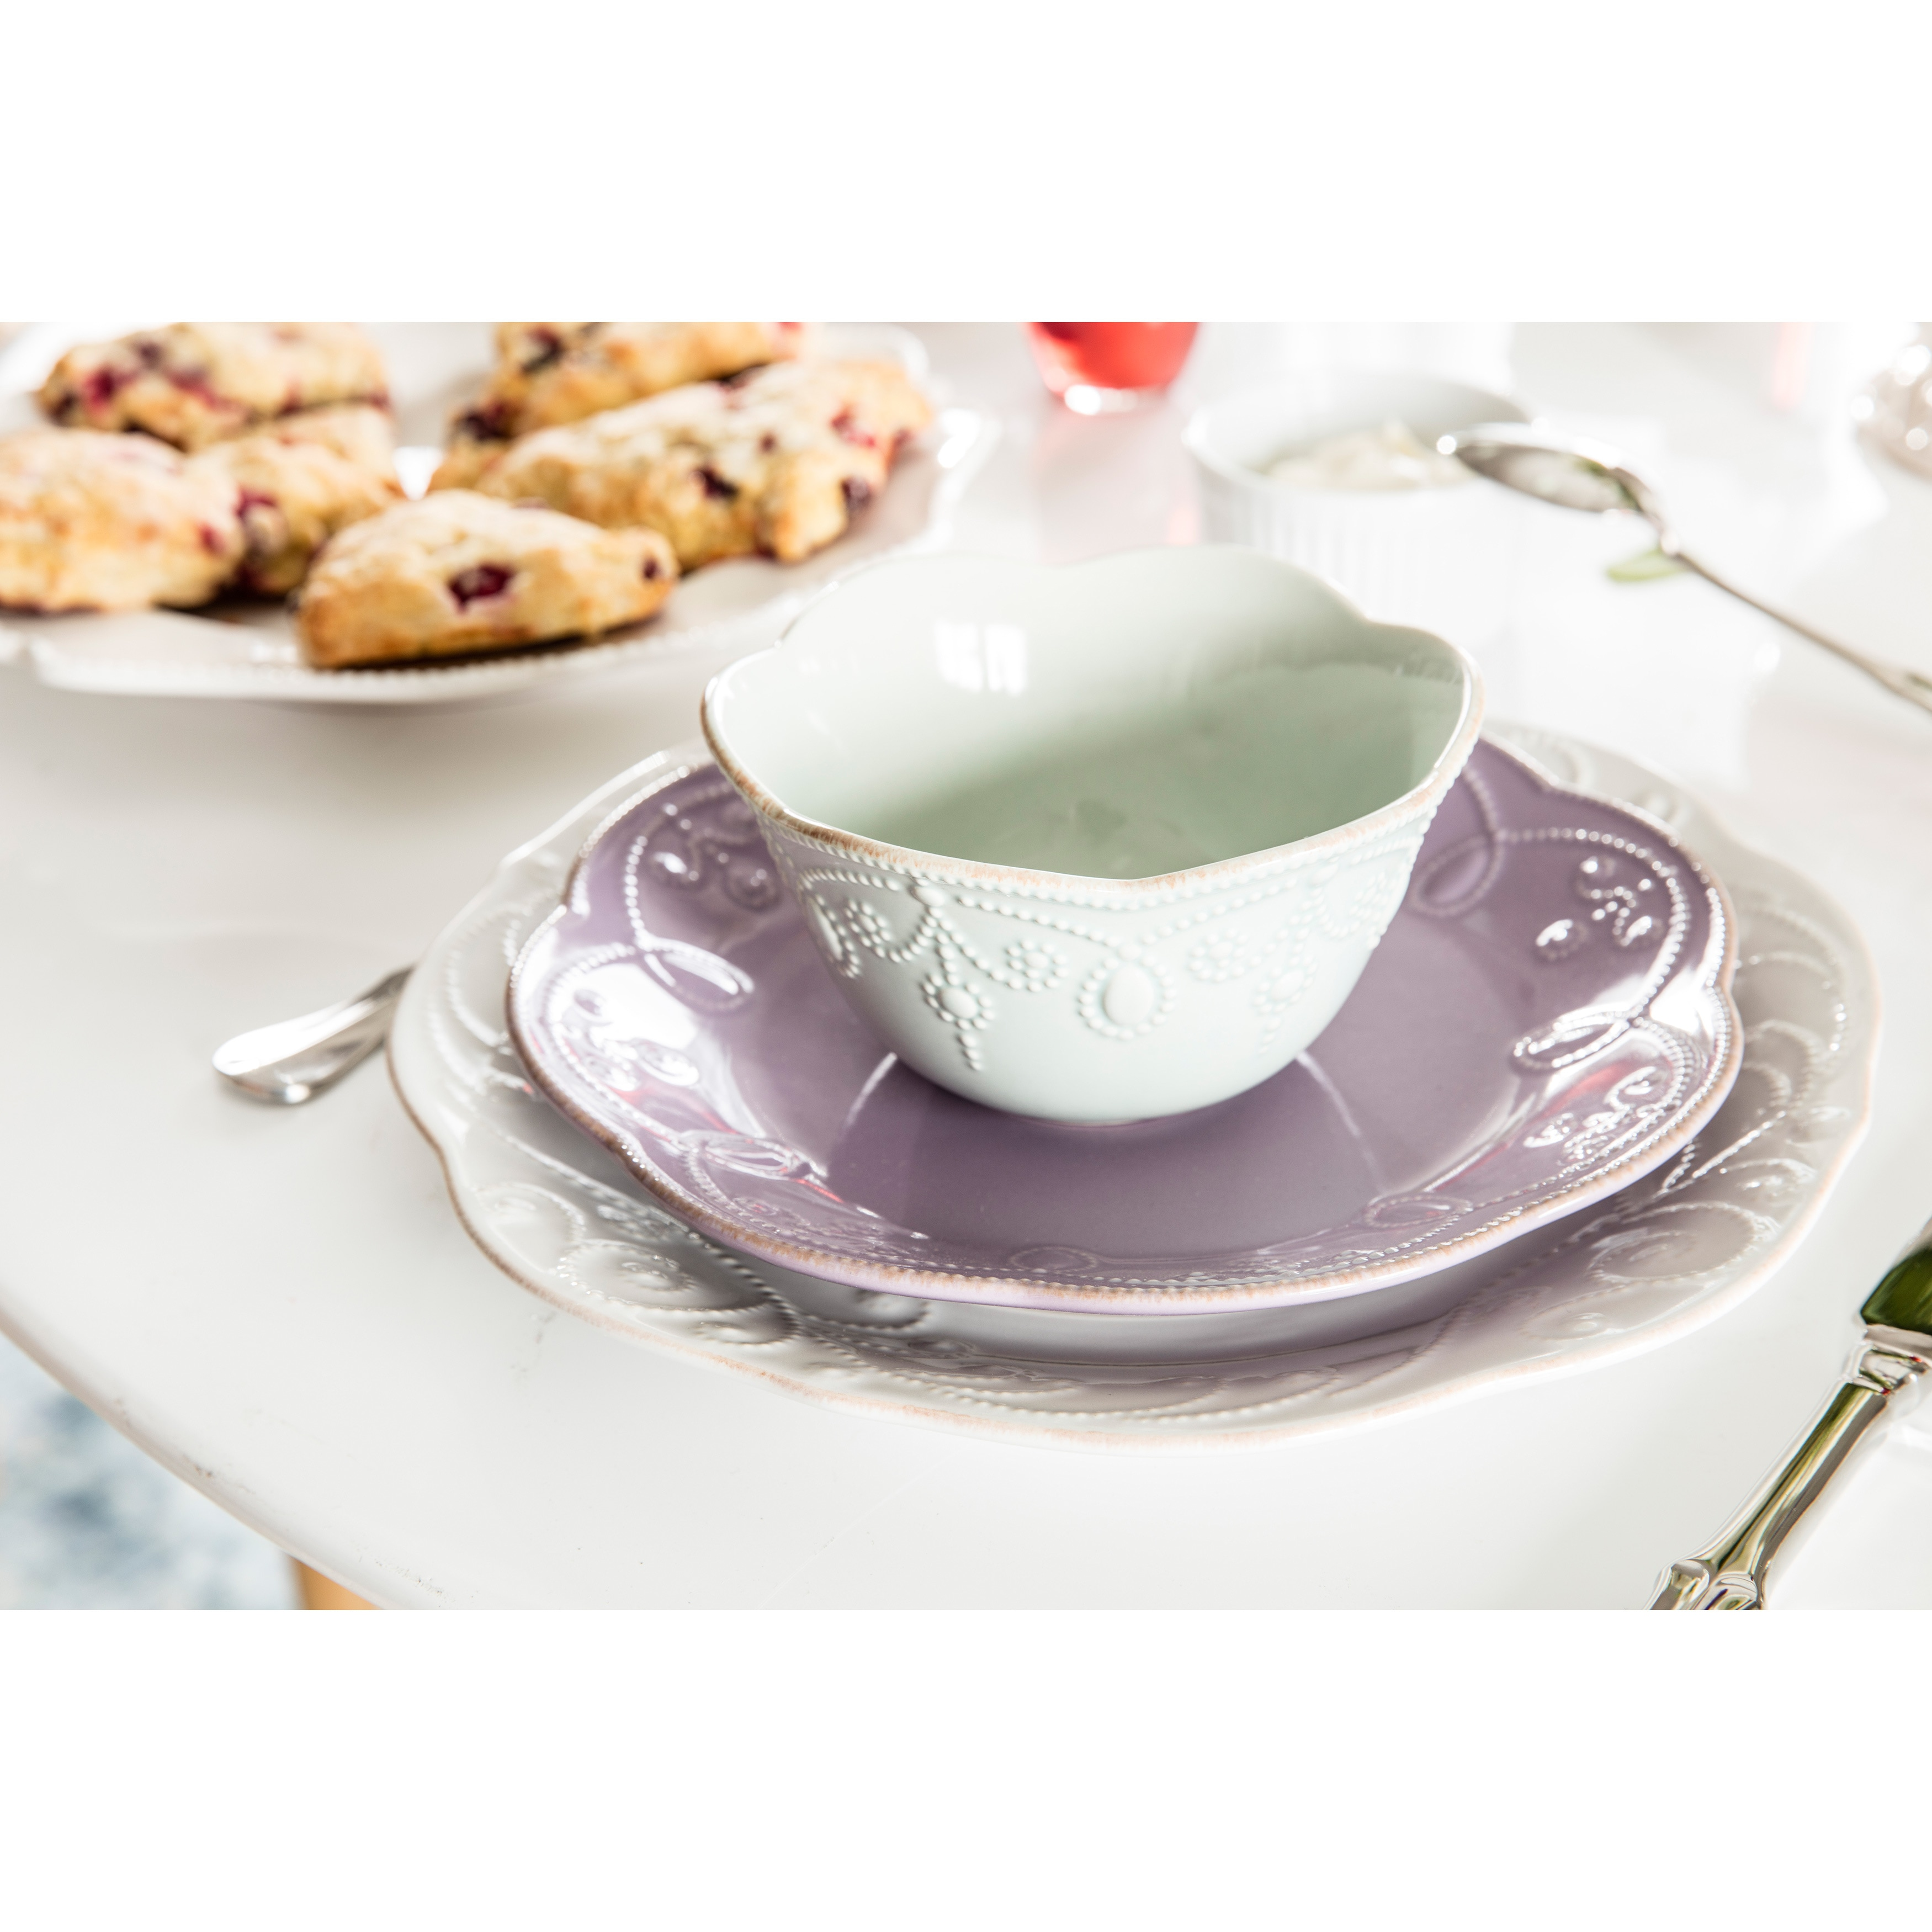 Lenox Violet French Perle 4-piece Dinnerware Set - Free Shipping Today - Overstock - 16191028  sc 1 st  Overstock.com & Lenox Violet French Perle 4-piece Dinnerware Set - Free Shipping ...